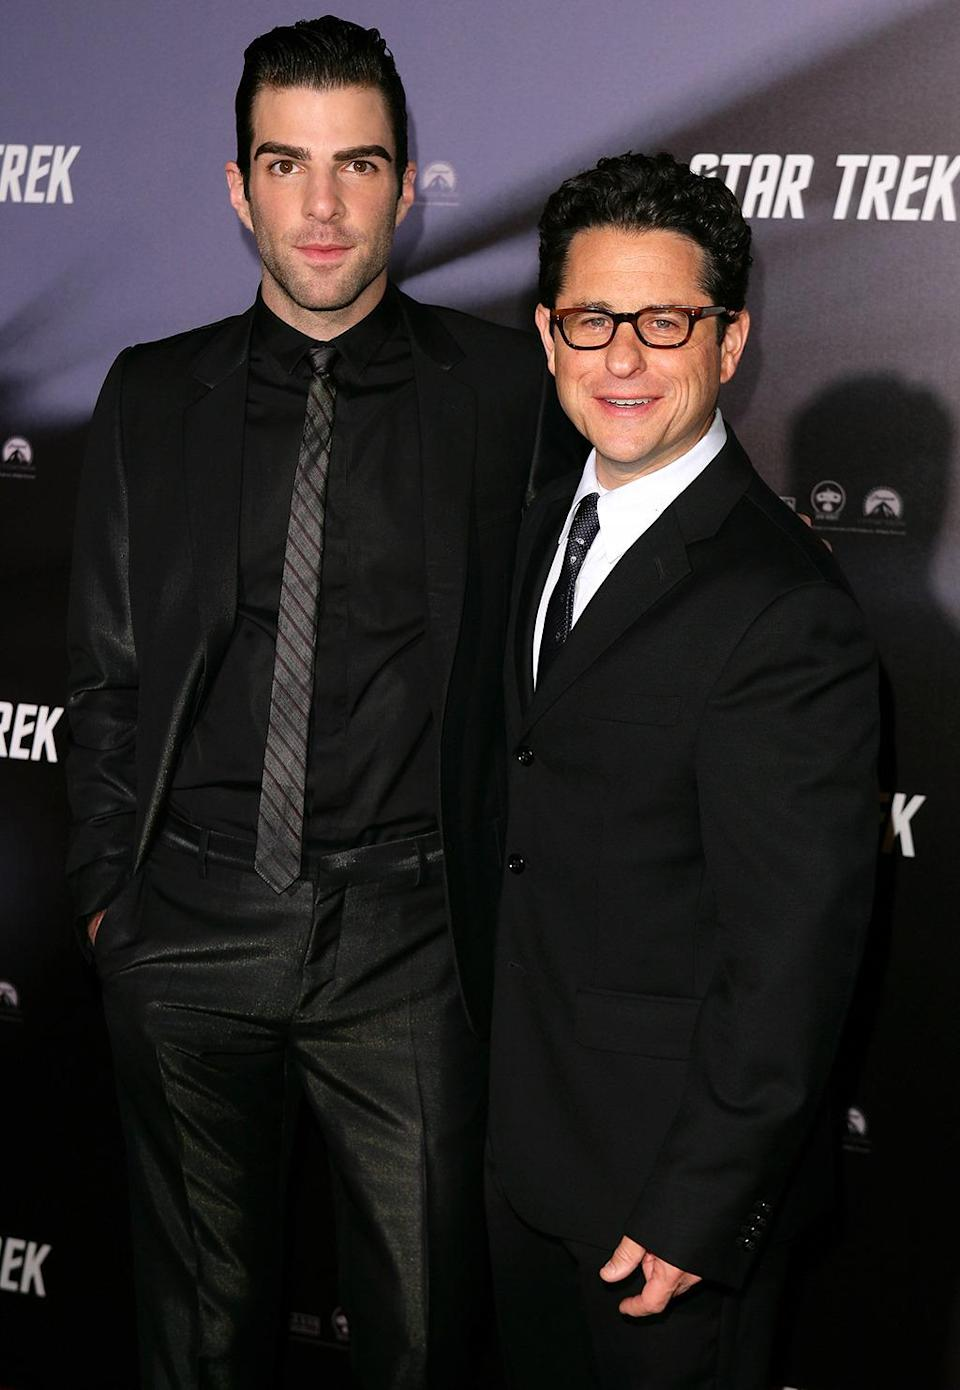 <p>Zachary Quinto with director J.J. Abrams in Sydney. Quinto arguably had the most difficult role in filling Leonard Nimoy's impossibly large shoes as Spock. <i>(Photo: Don Arnold/WireImage)</i></p>